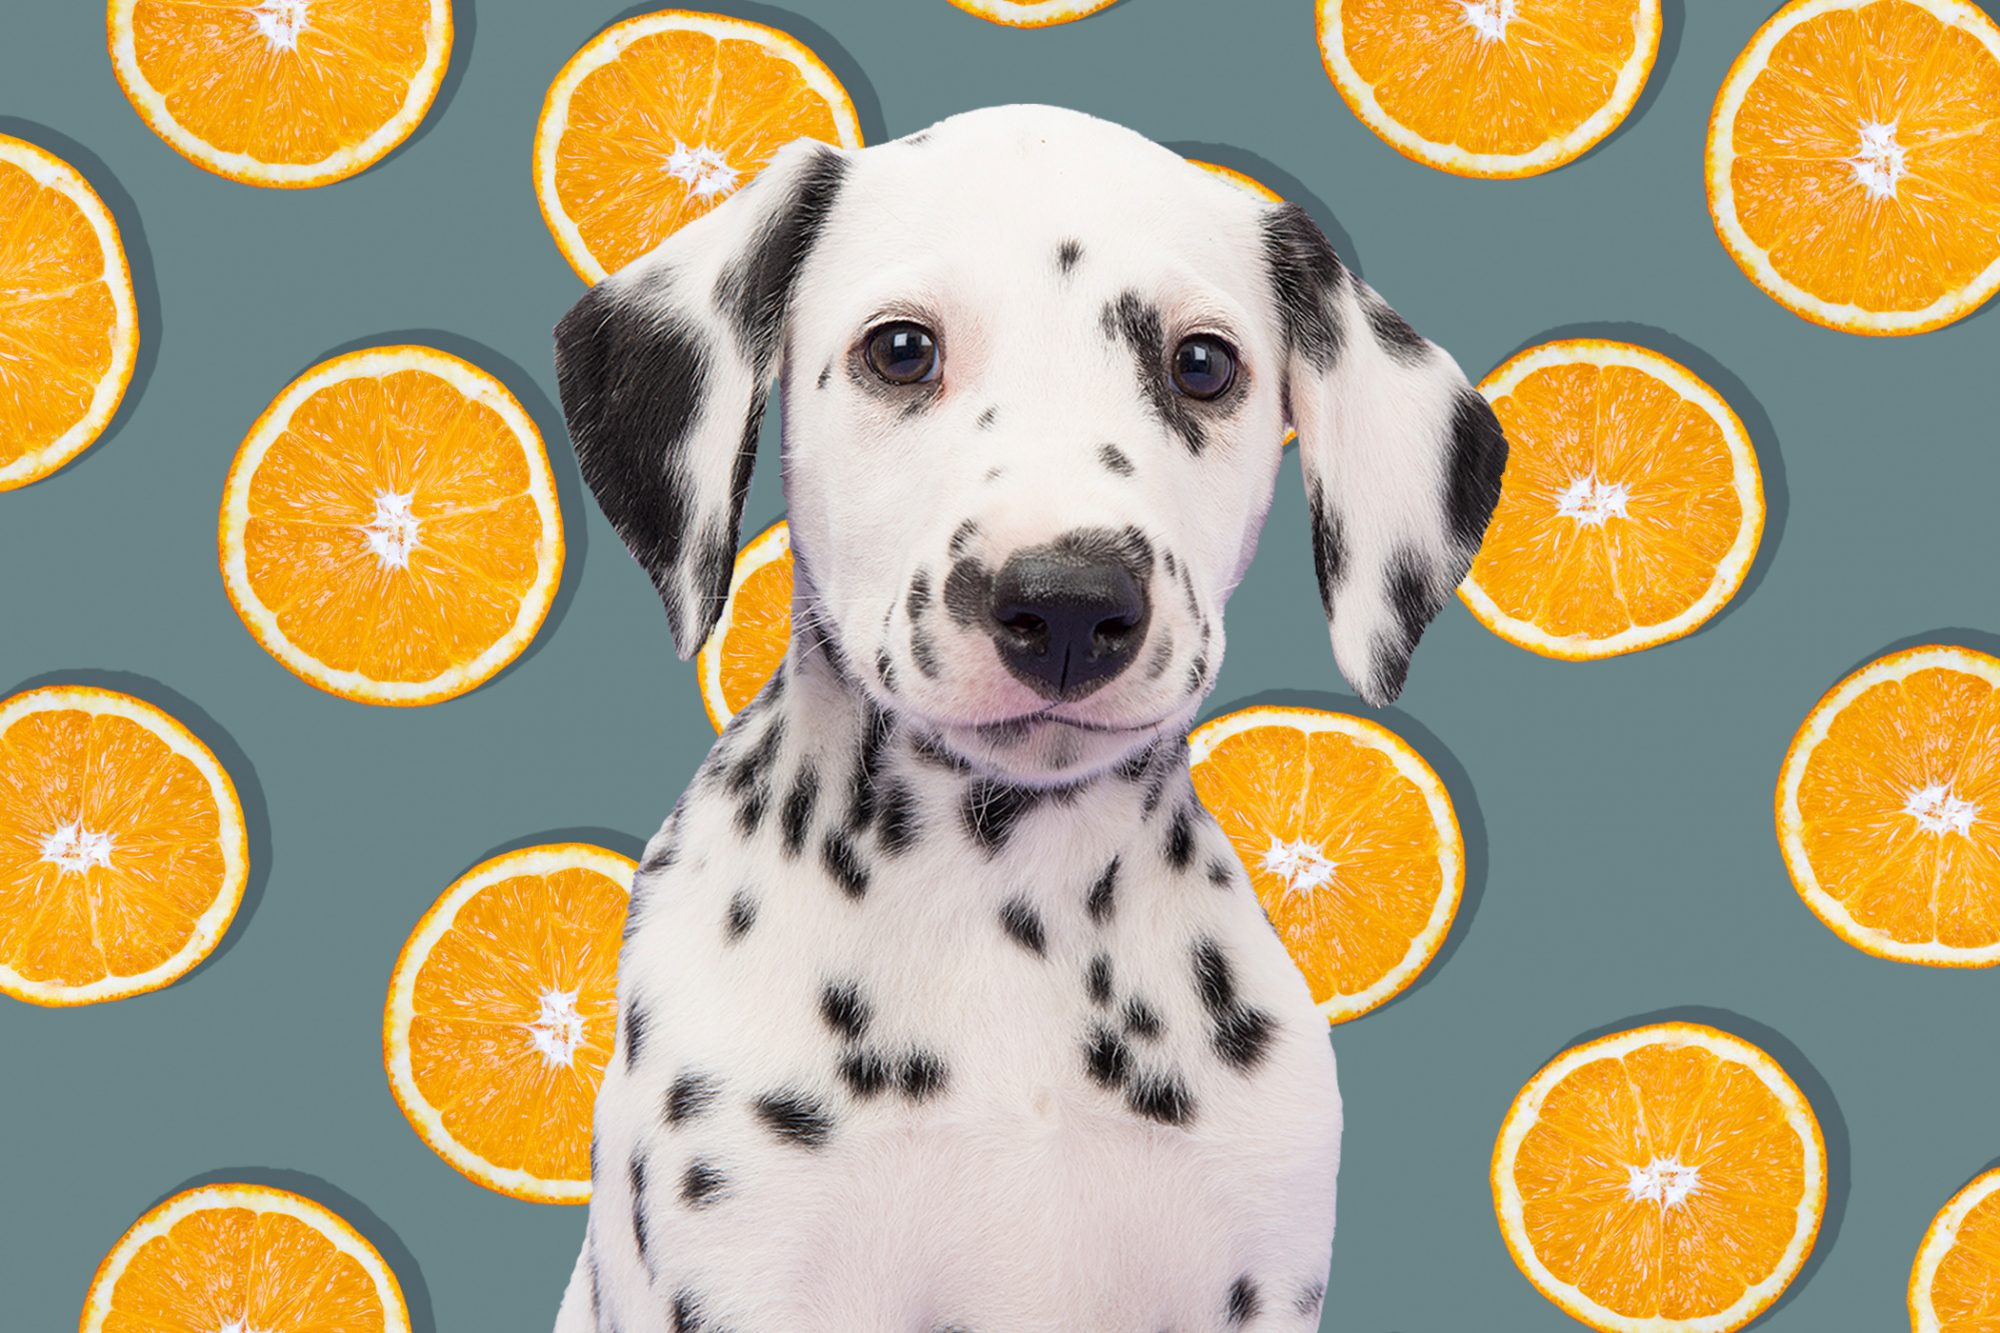 Spotted white and black puppy sits in front of tangerine illustration